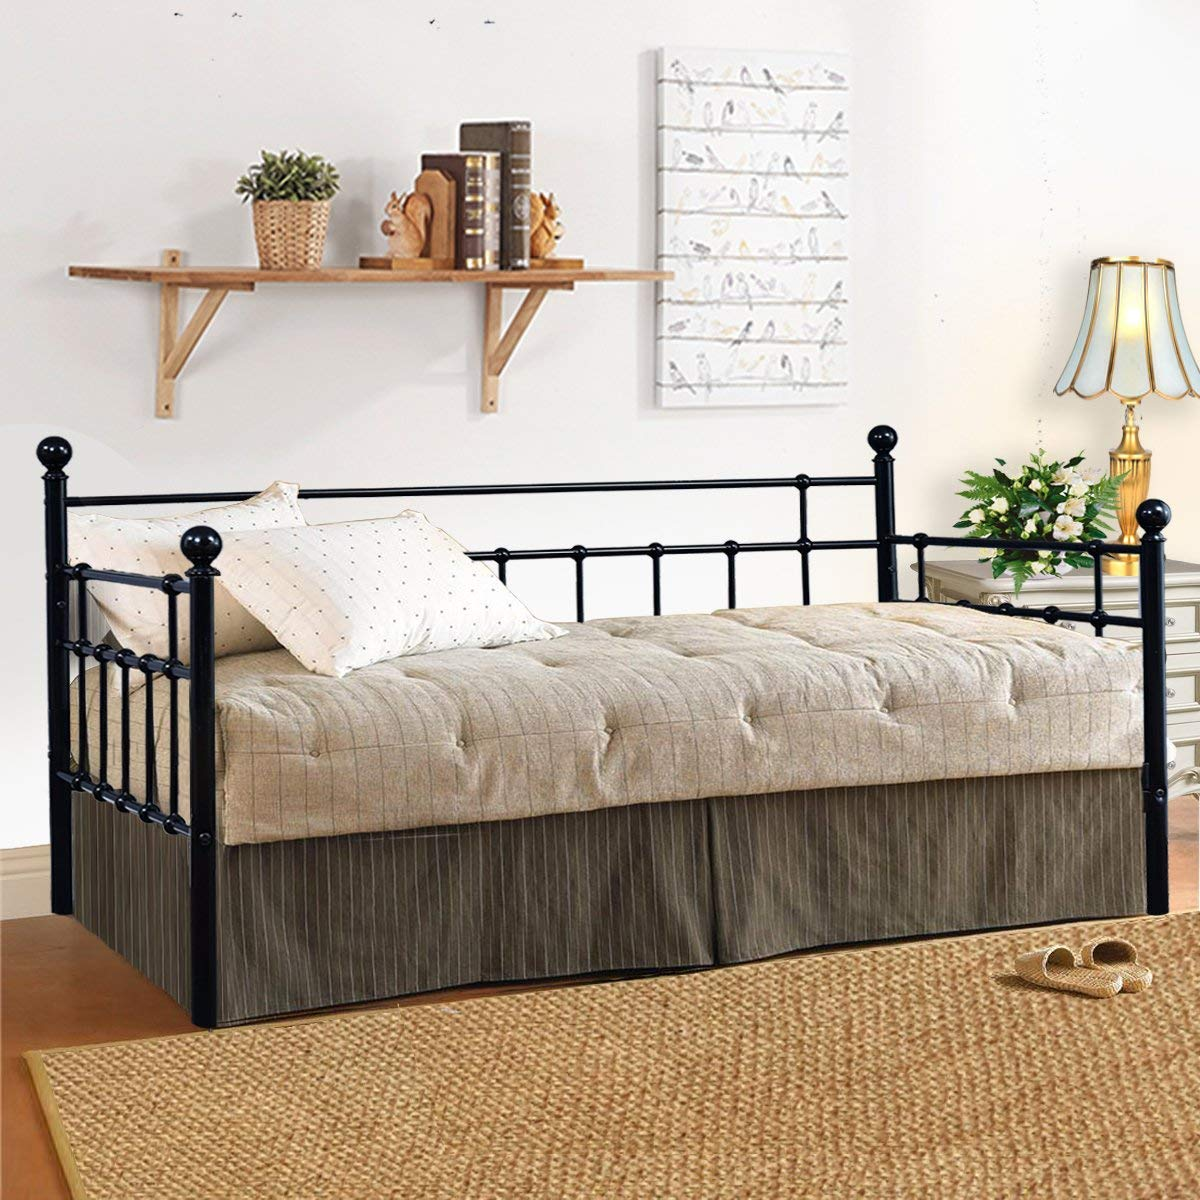 HOMERECOMMEND Metal Daybed Frame Twin Steel Slats Platform Base Box Spring Replacement Children Bed Sofa for Living Room Guest Room (Twin,Black)